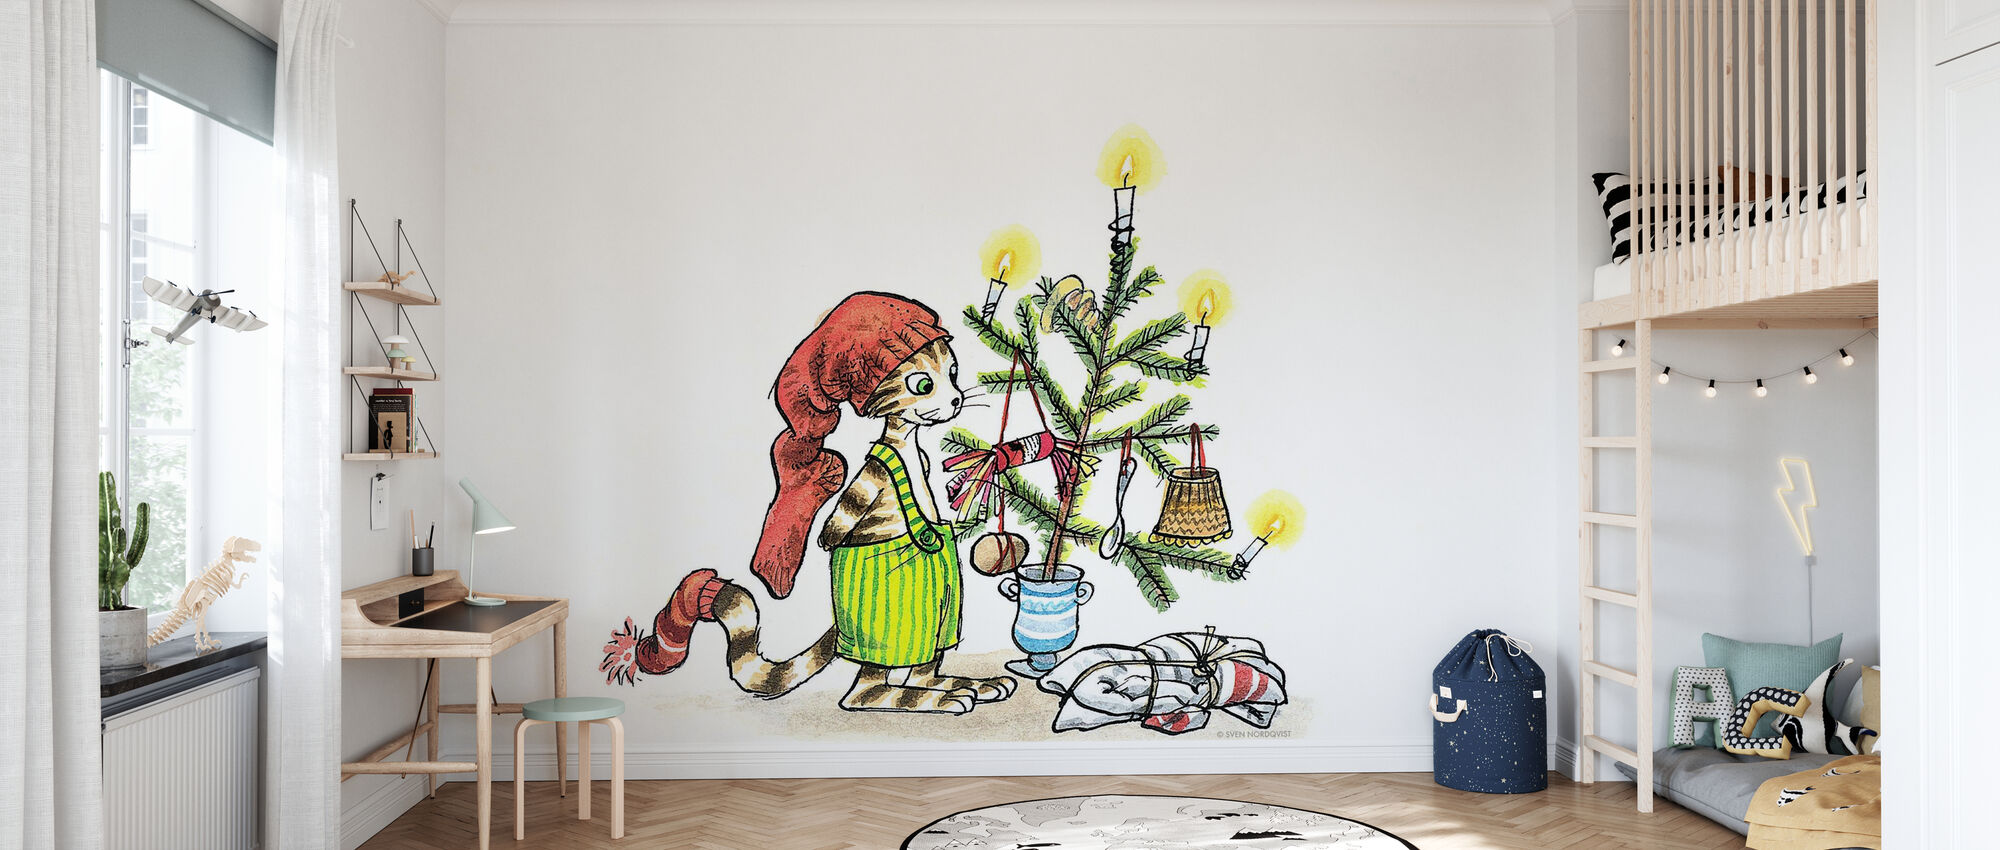 Pettson gets Christmas visits - Wallpaper - Kids Room